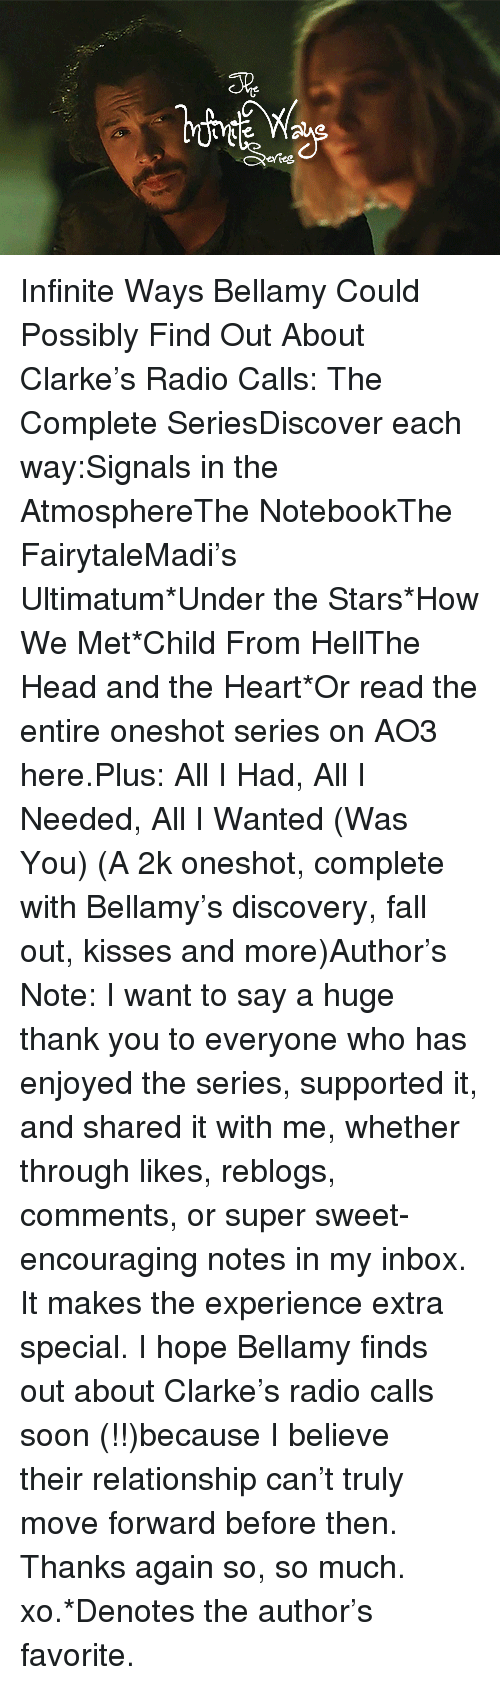 fairytale: 5%  efteg Infinite Ways Bellamy Could Possibly Find Out About Clarke's Radio Calls: The Complete SeriesDiscover each way:Signals in the AtmosphereThe NotebookThe FairytaleMadi's Ultimatum*Under the Stars*How We Met*Child From HellThe Head and the Heart*Or read the entire oneshotseries on AO3 here.Plus:All I Had, All I Needed, All I Wanted (Was You) (A 2k oneshot, complete with Bellamy's discovery, fall out, kisses and more)Author's Note: I want to say a huge thank you to everyone who has enjoyed the series, supported it, and shared it with me, whether through likes, reblogs, comments, or super sweet-encouraging notes in my inbox. It makes the experience extra special. I hope Bellamy finds out about Clarke's radio calls soon (!!)because I believe theirrelationship can't truly move forward before then. Thanks again so, so much. xo.*Denotes the author's favorite.